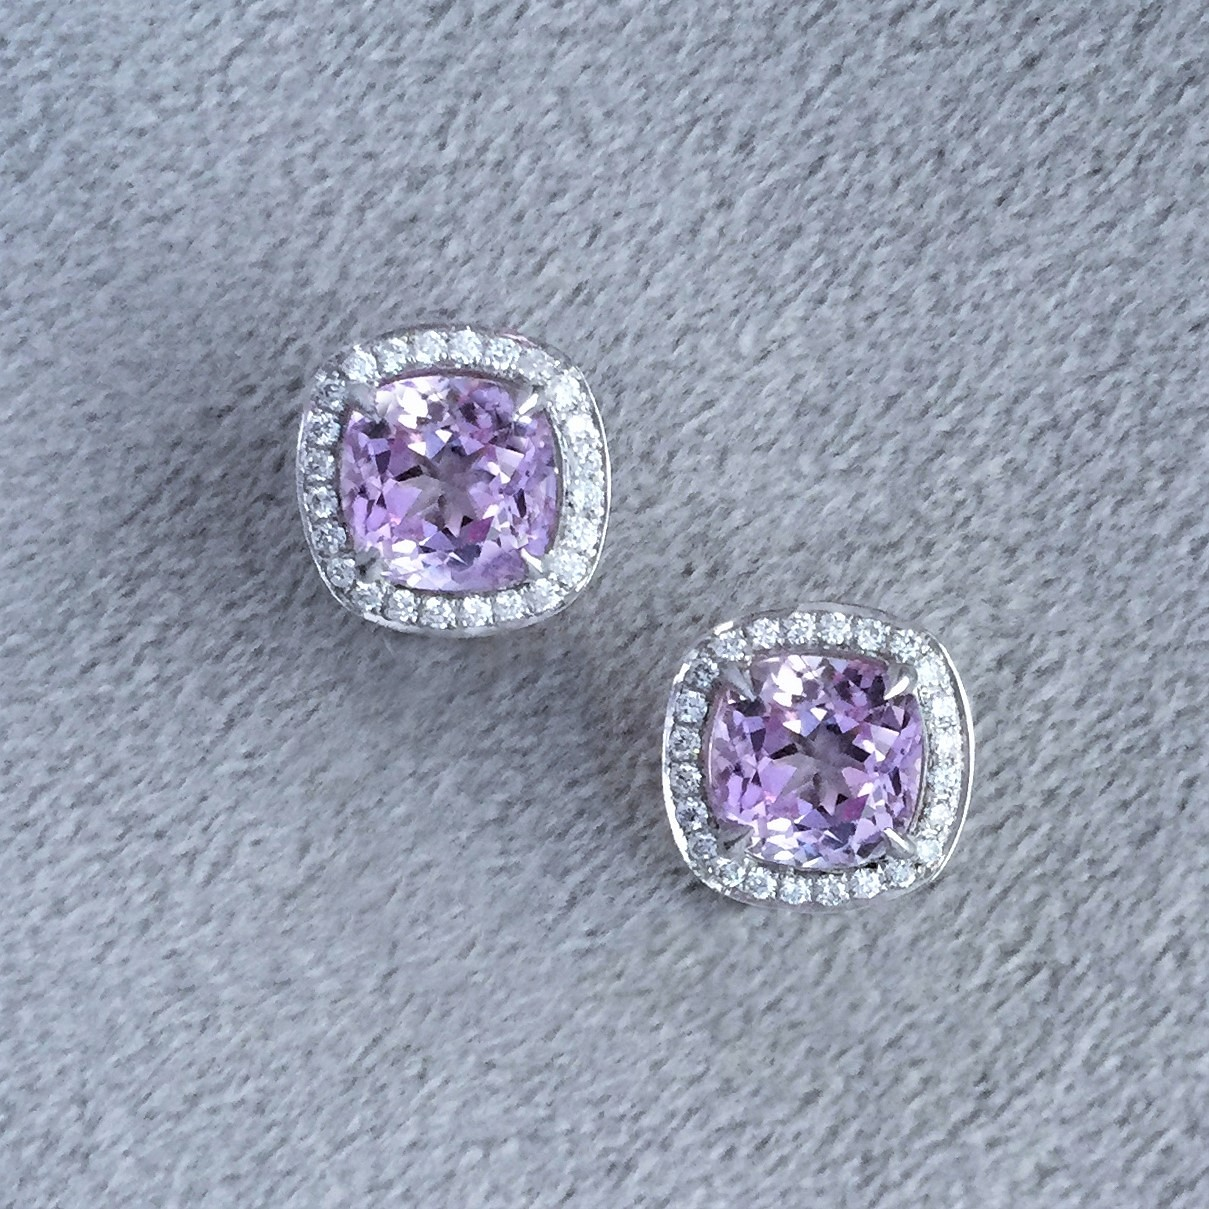 Cushion cut kunzite & diamond clip earrings in white gold